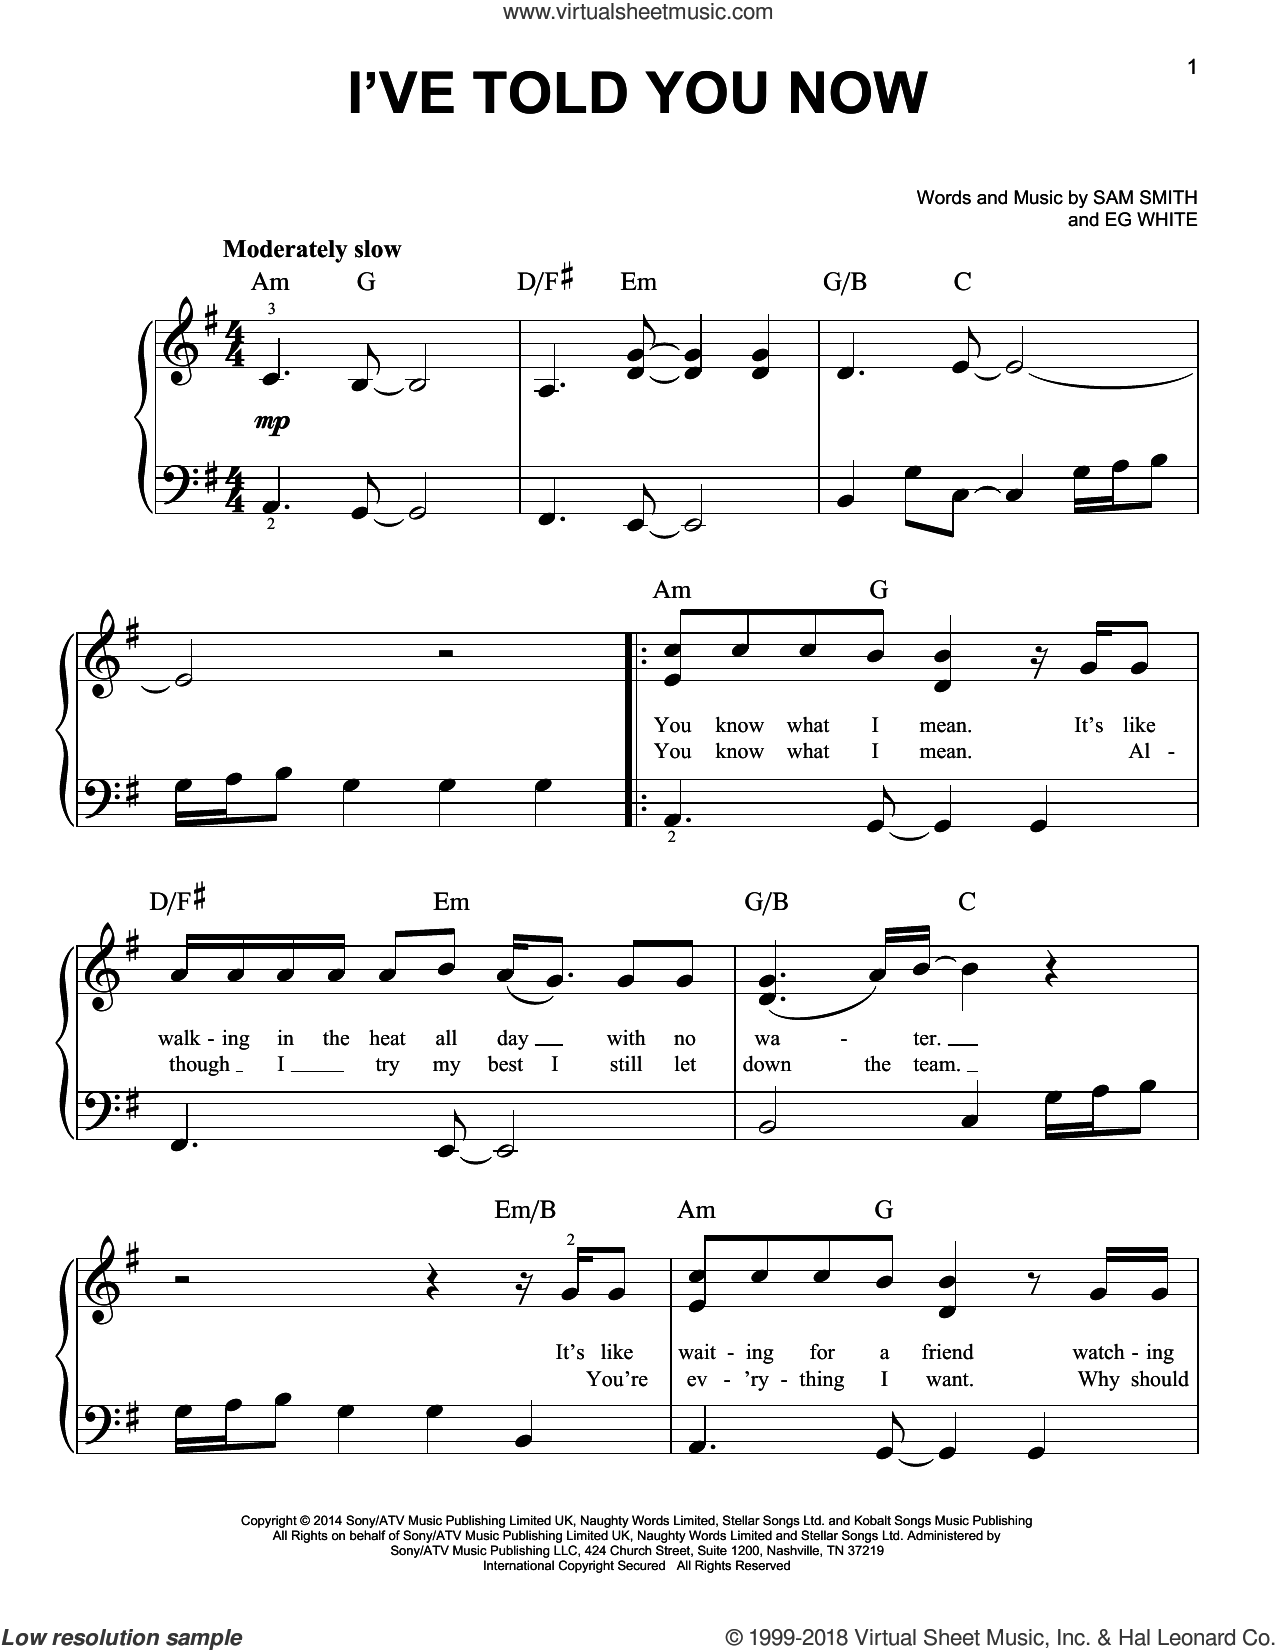 I've Told You Now sheet music for piano solo by Sam Smith and Eg White, easy skill level